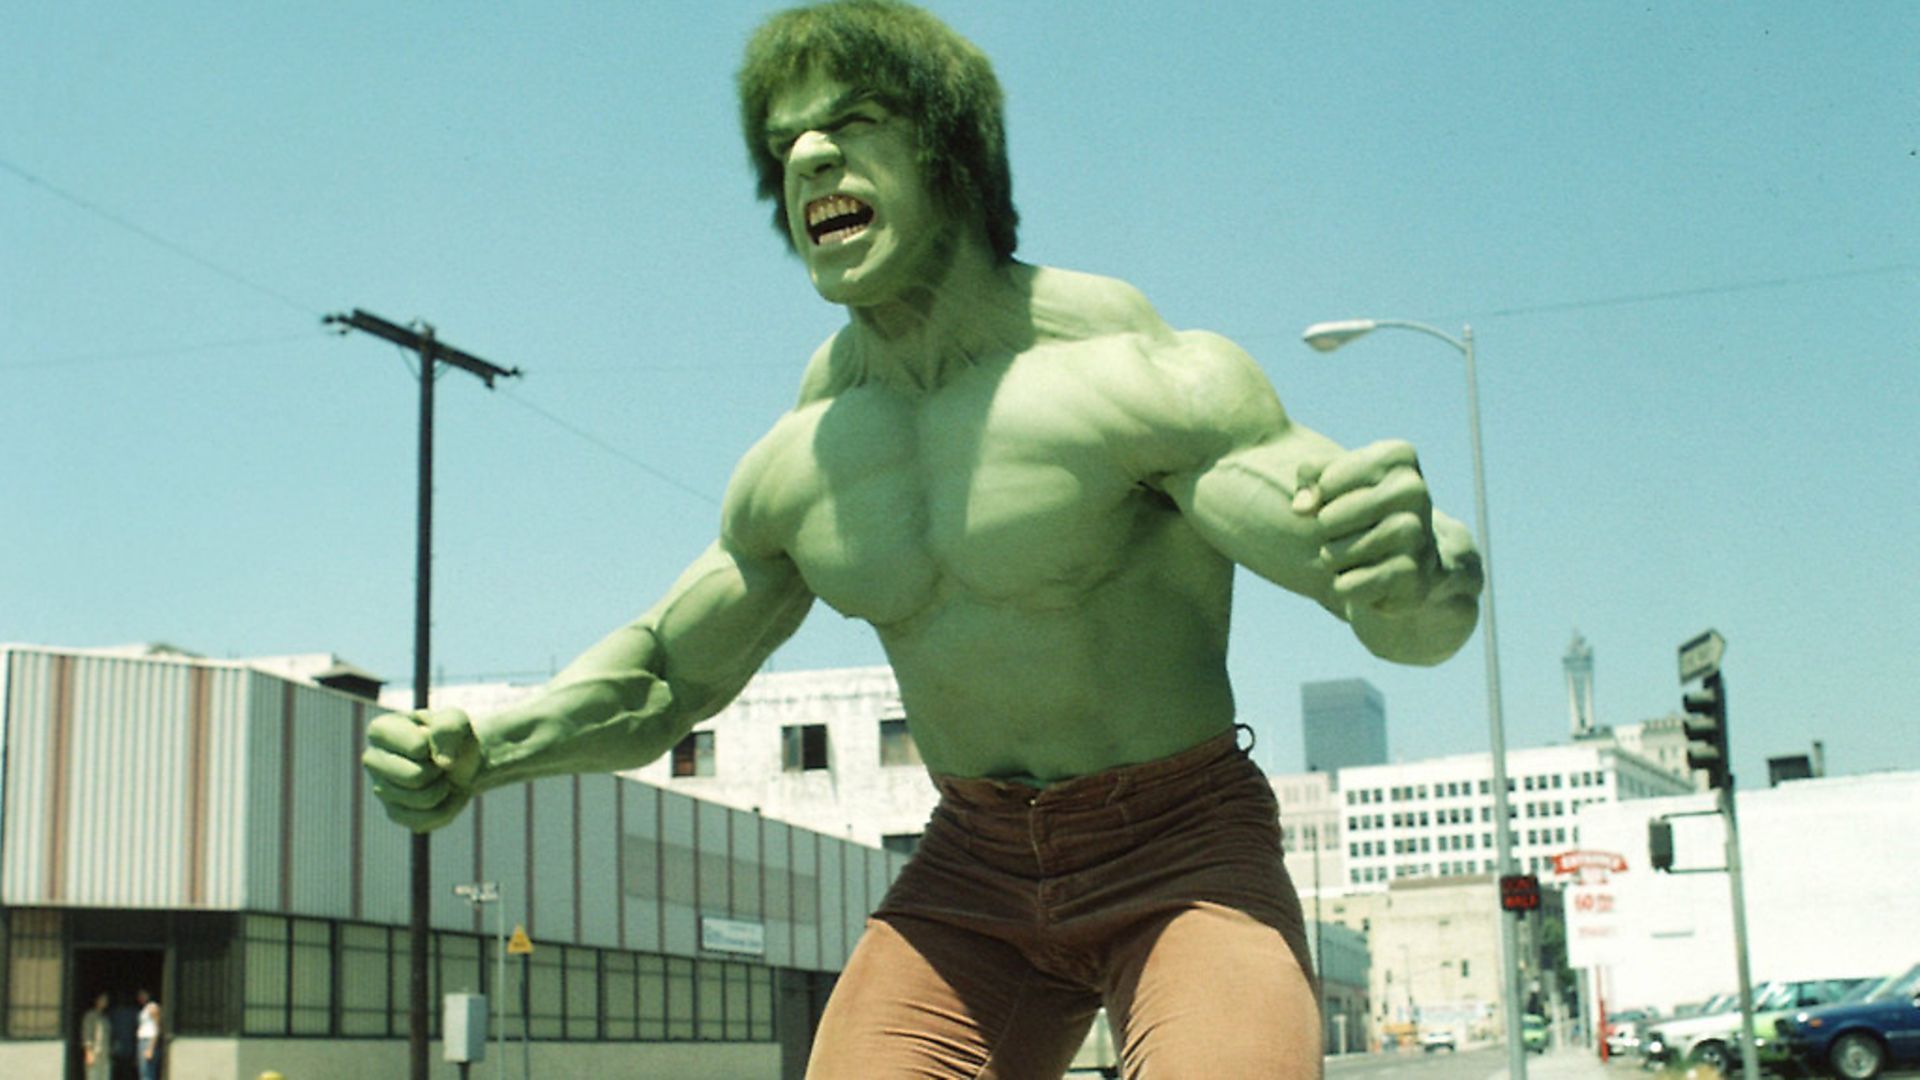 """LOS ANGELES - JANUARY 16: THE INCREDIBLE HULK cast member Lou Ferrigno as the 'Hulk'.  Episode 62: """"Fast Lane""""  Original Airdate: January 16, 1981.  (Photo by CBS via Getty Images) - Credit: CBS via Getty Images"""